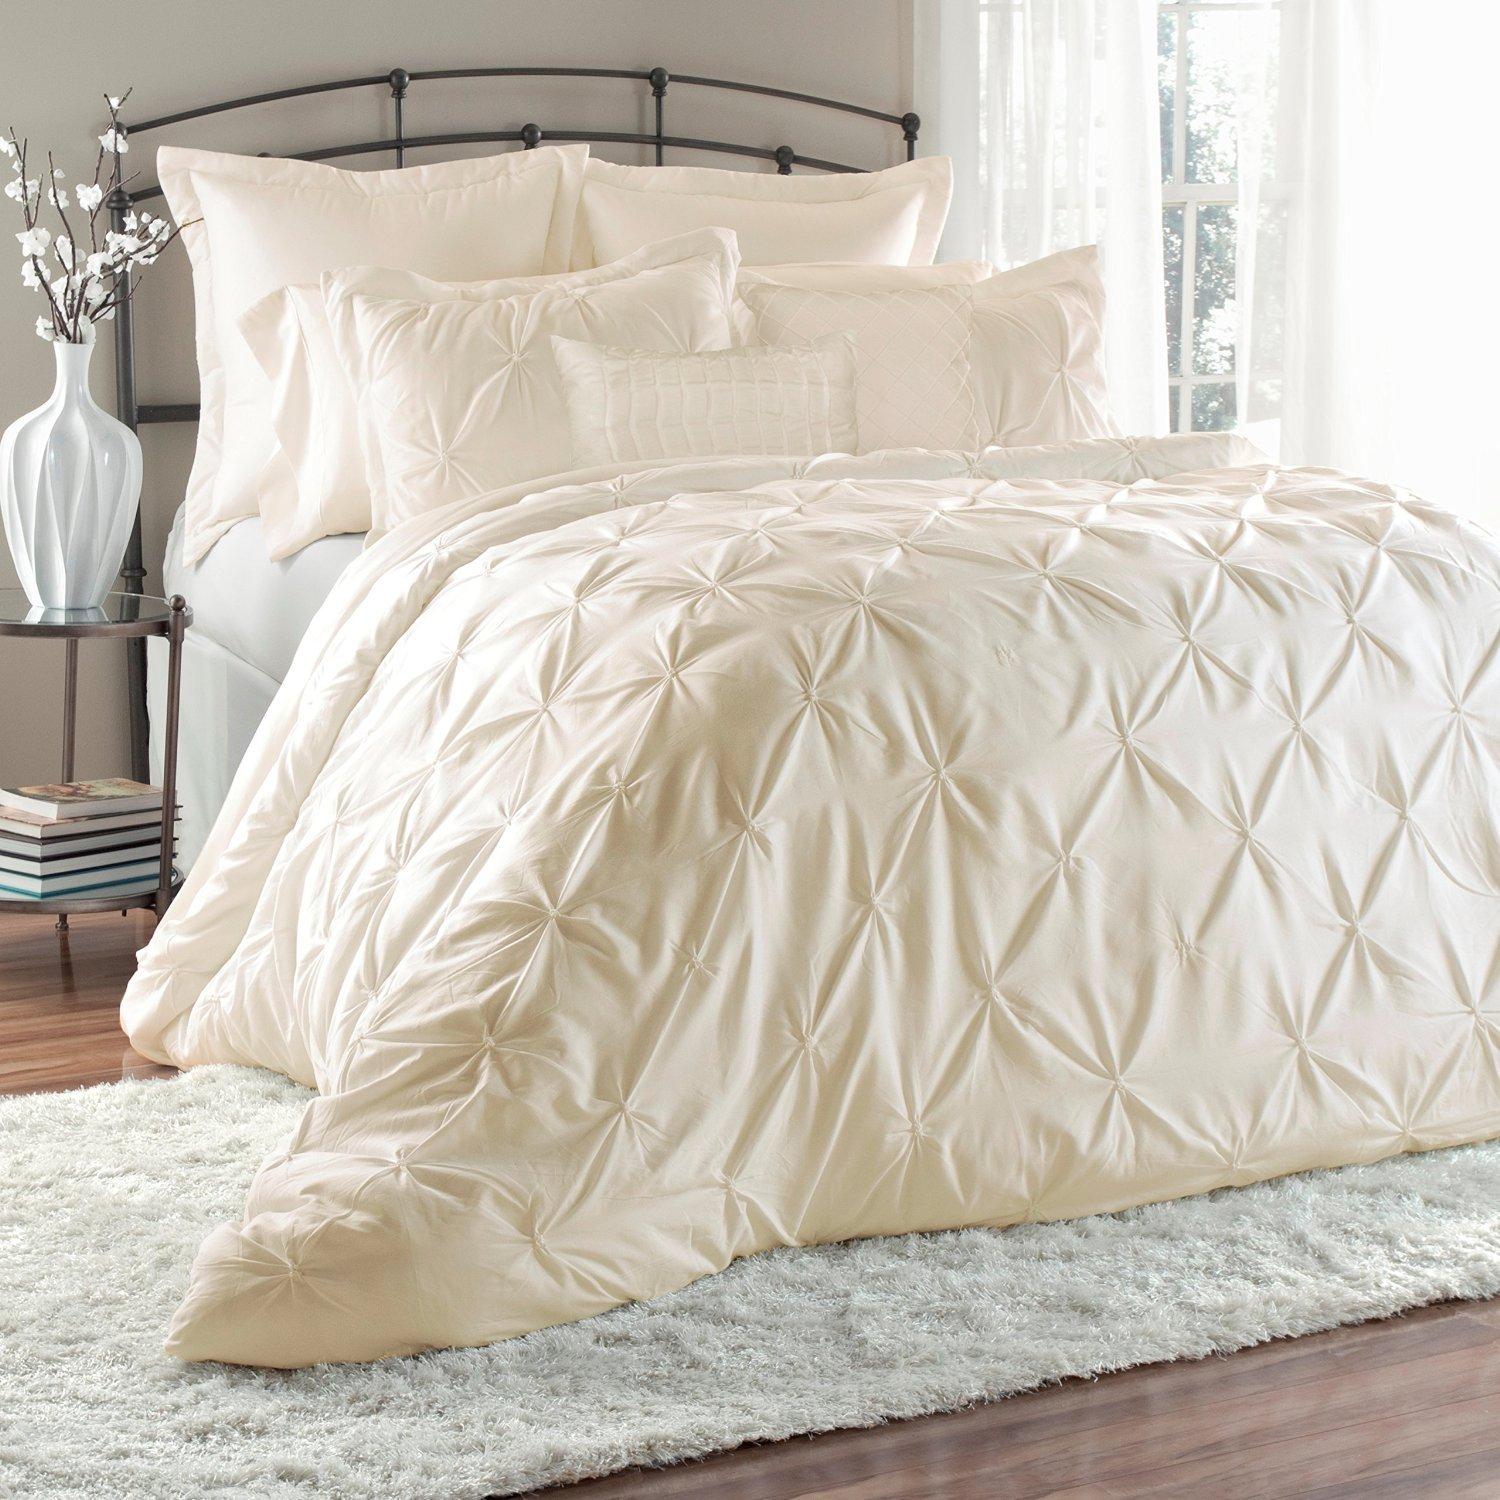 sets bedspread cream imperial sale piece product rooms set quilted comforter bedspreads jacquard bedding luxury